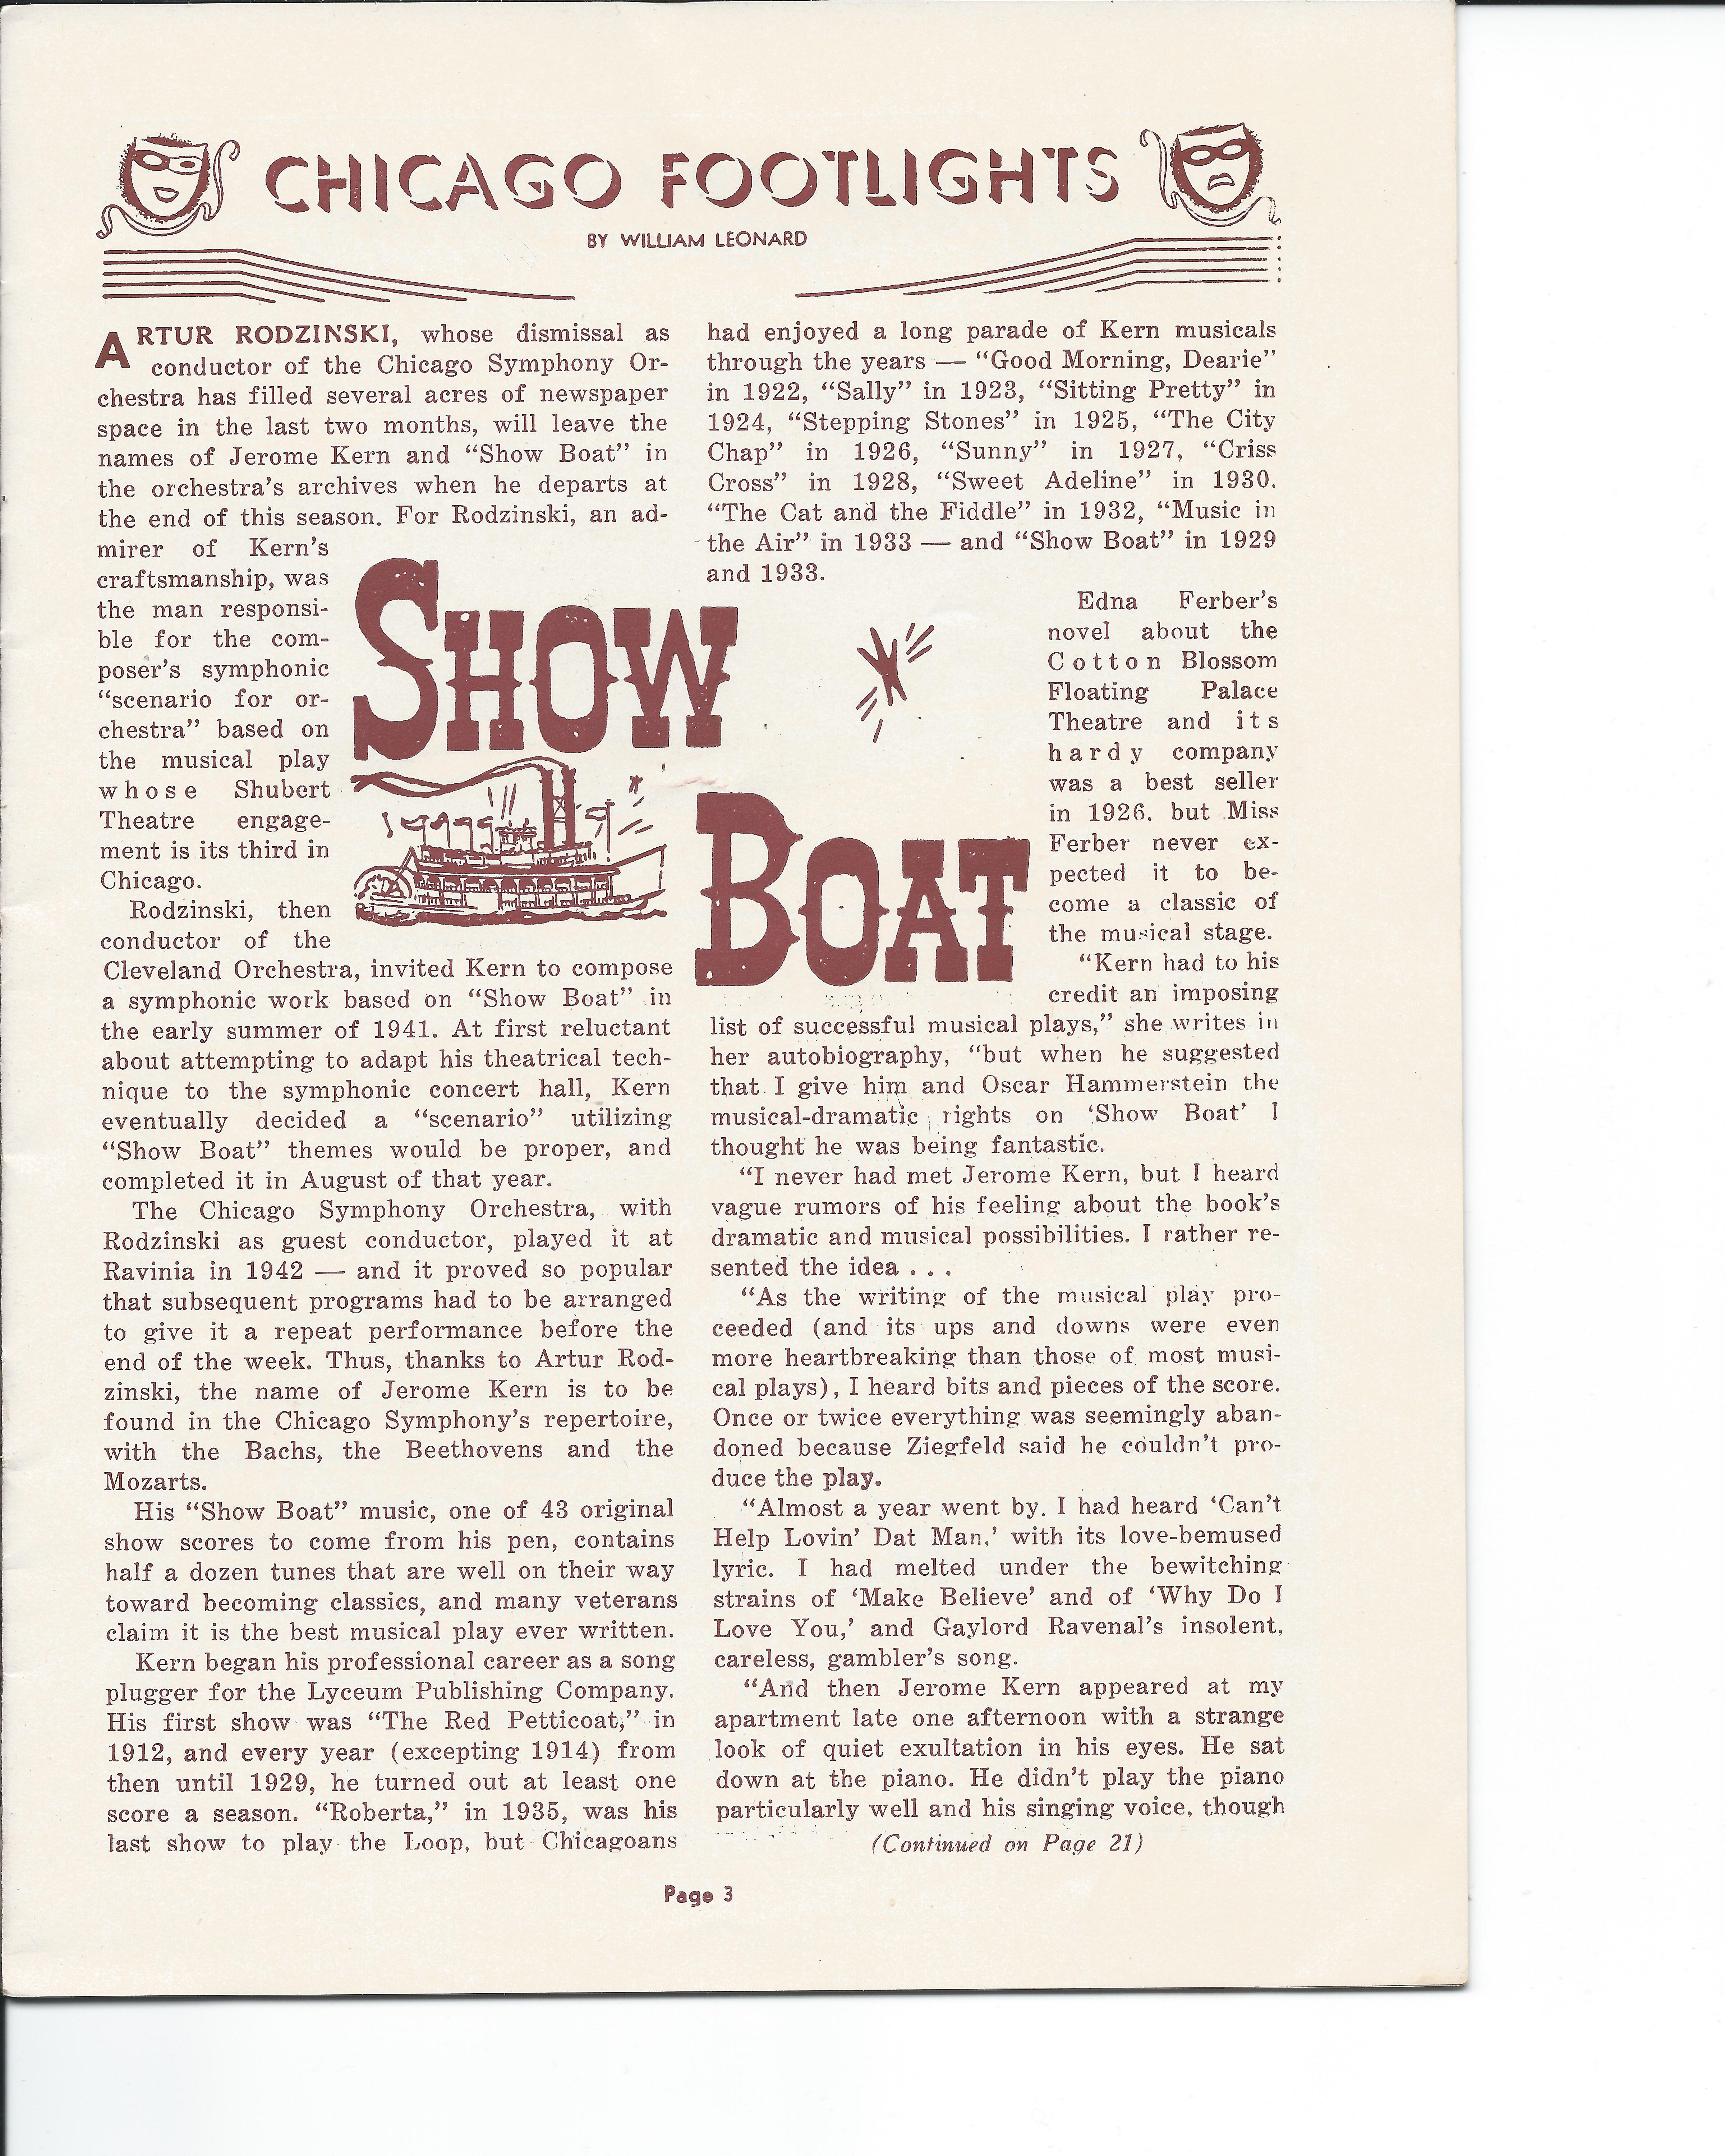 Showboat Stagebill - Chicago Shubert Theater, 3/21/1948 p. 3